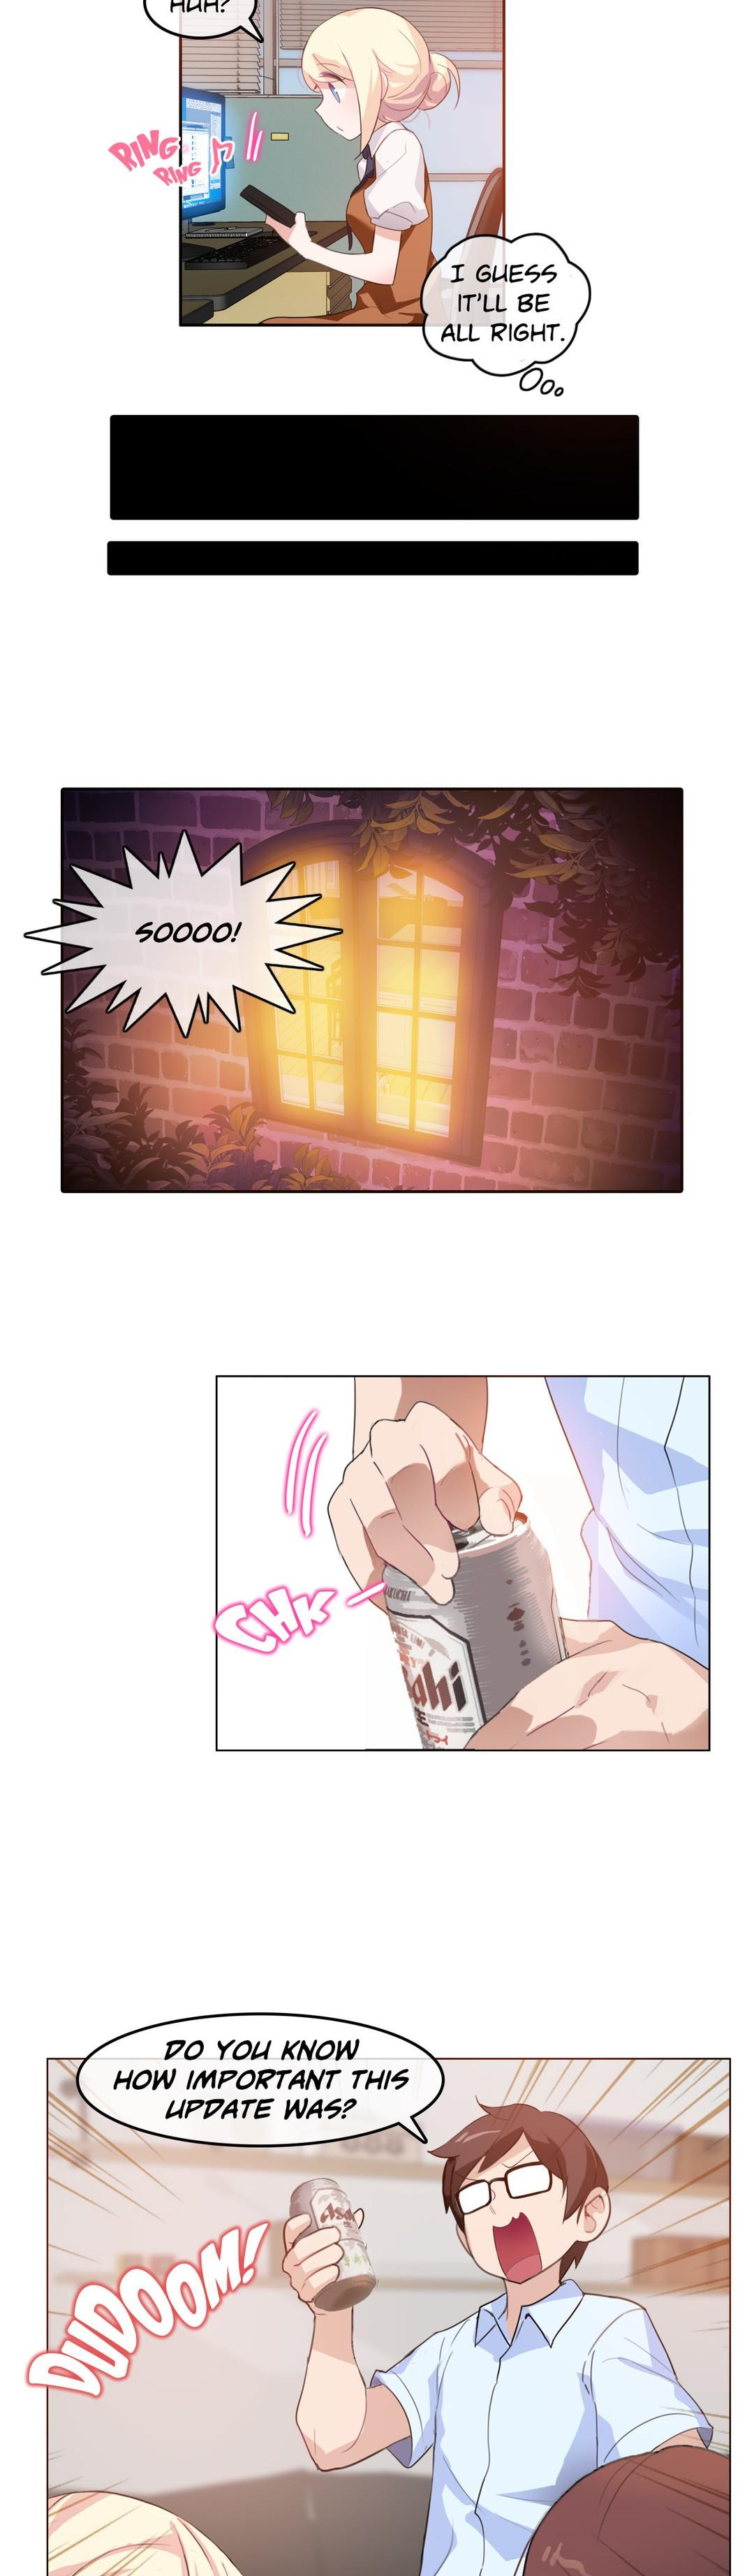 A Pervert's Daily Life Ch. 1-34 183